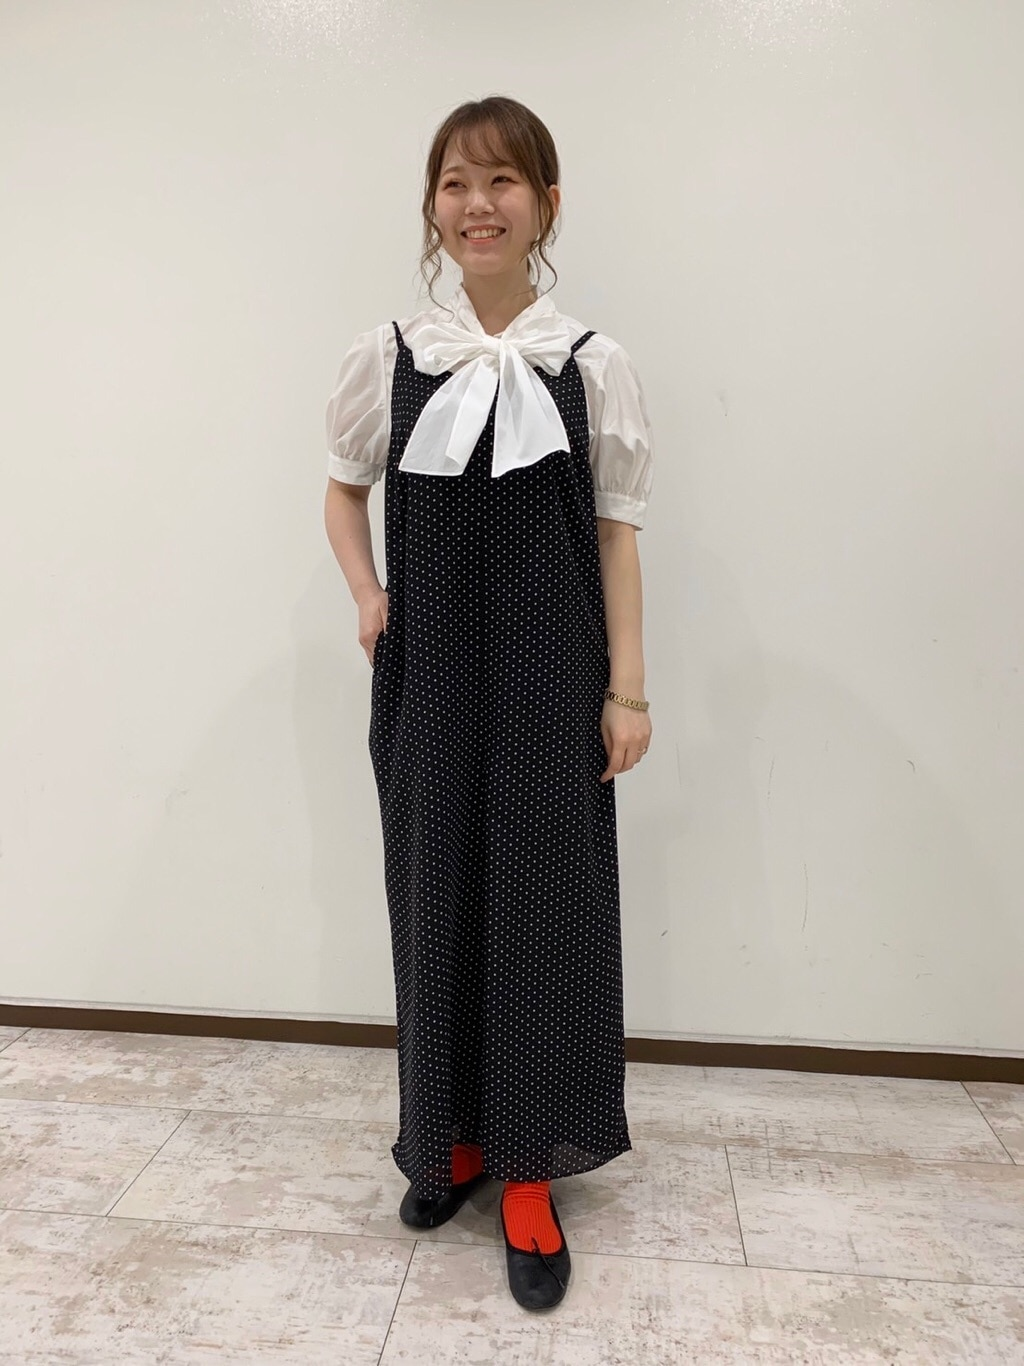 Dot and Stripes CHILD WOMAN 新宿ミロード 身長:157cm 2020.04.19